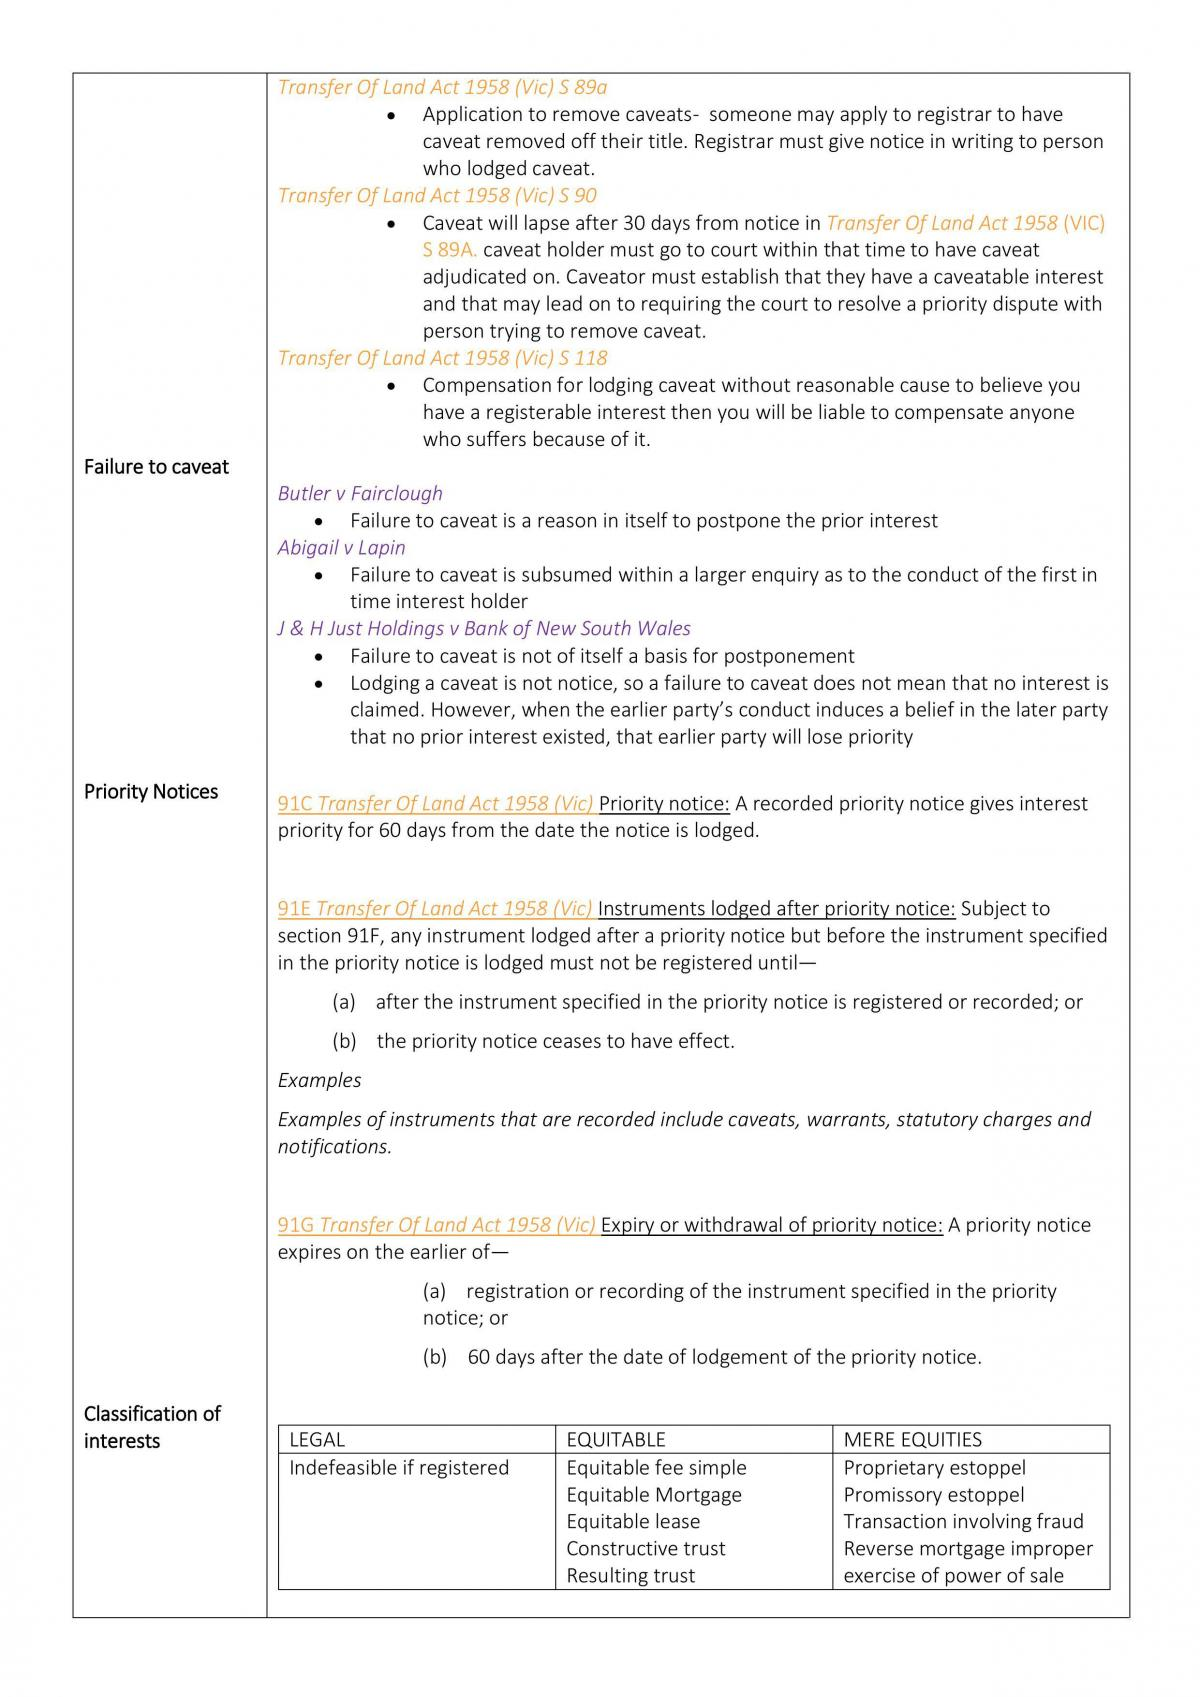 Exam Notes - Page 15